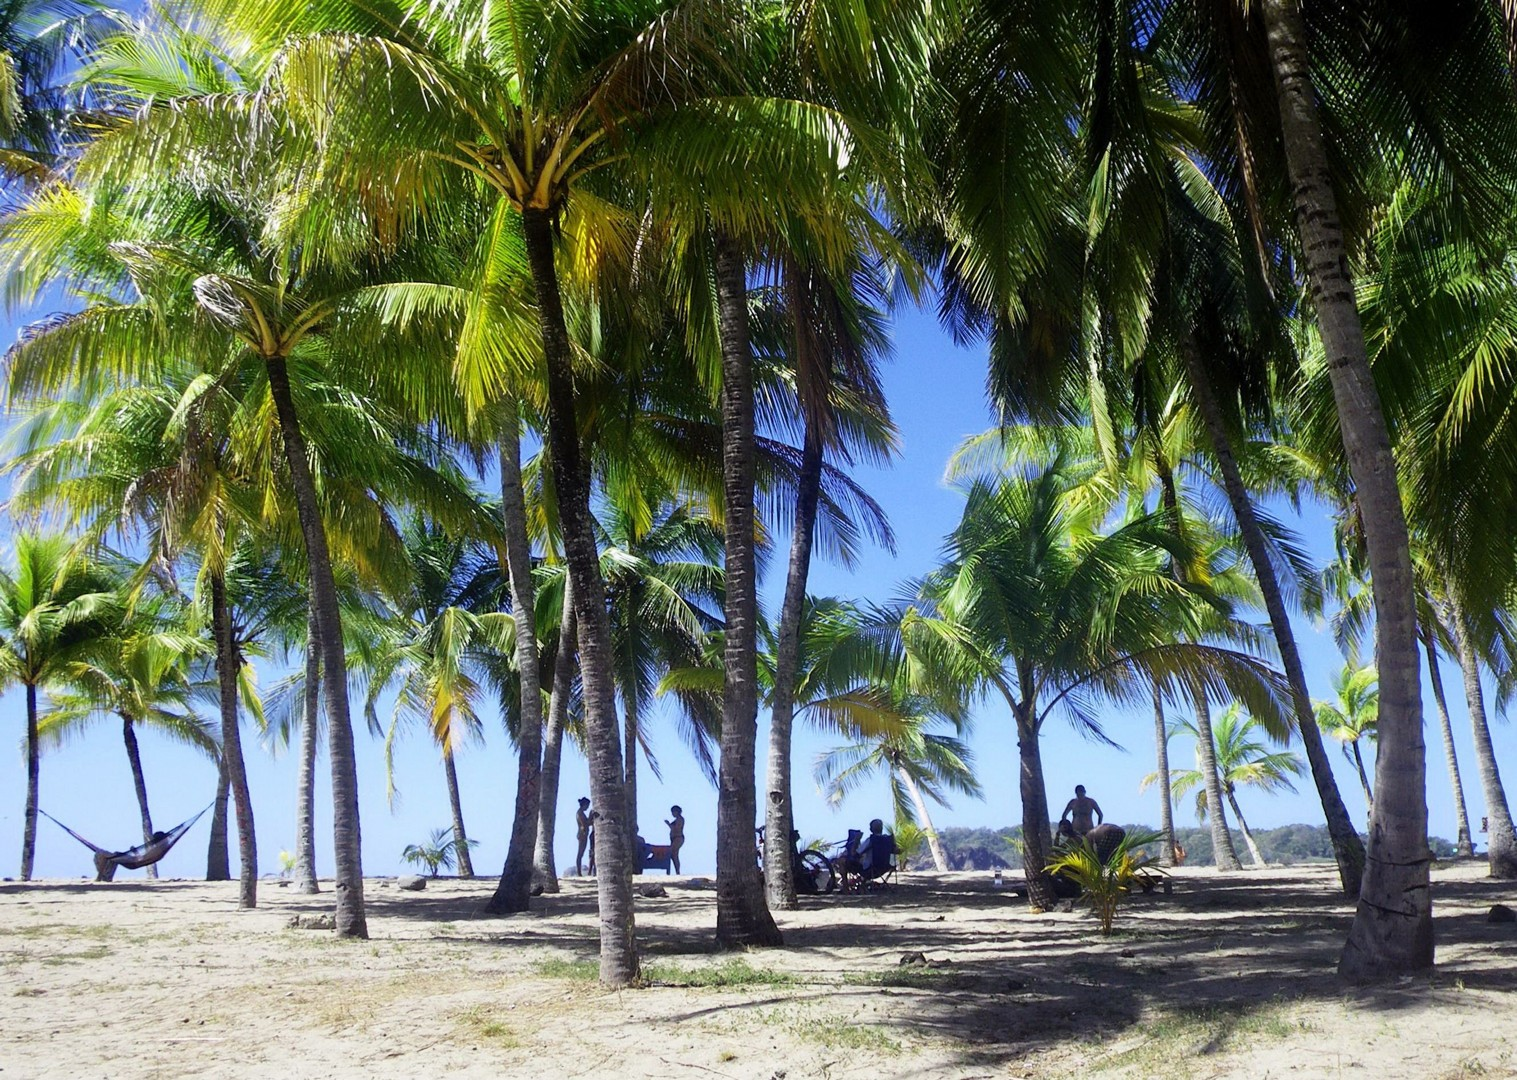 costa-rica-beach-central-america-family-cycling-holiday.jpg - Costa Rica - Volcanoes and Valleys - Guided Family Cycling Holiday - Family Cycling